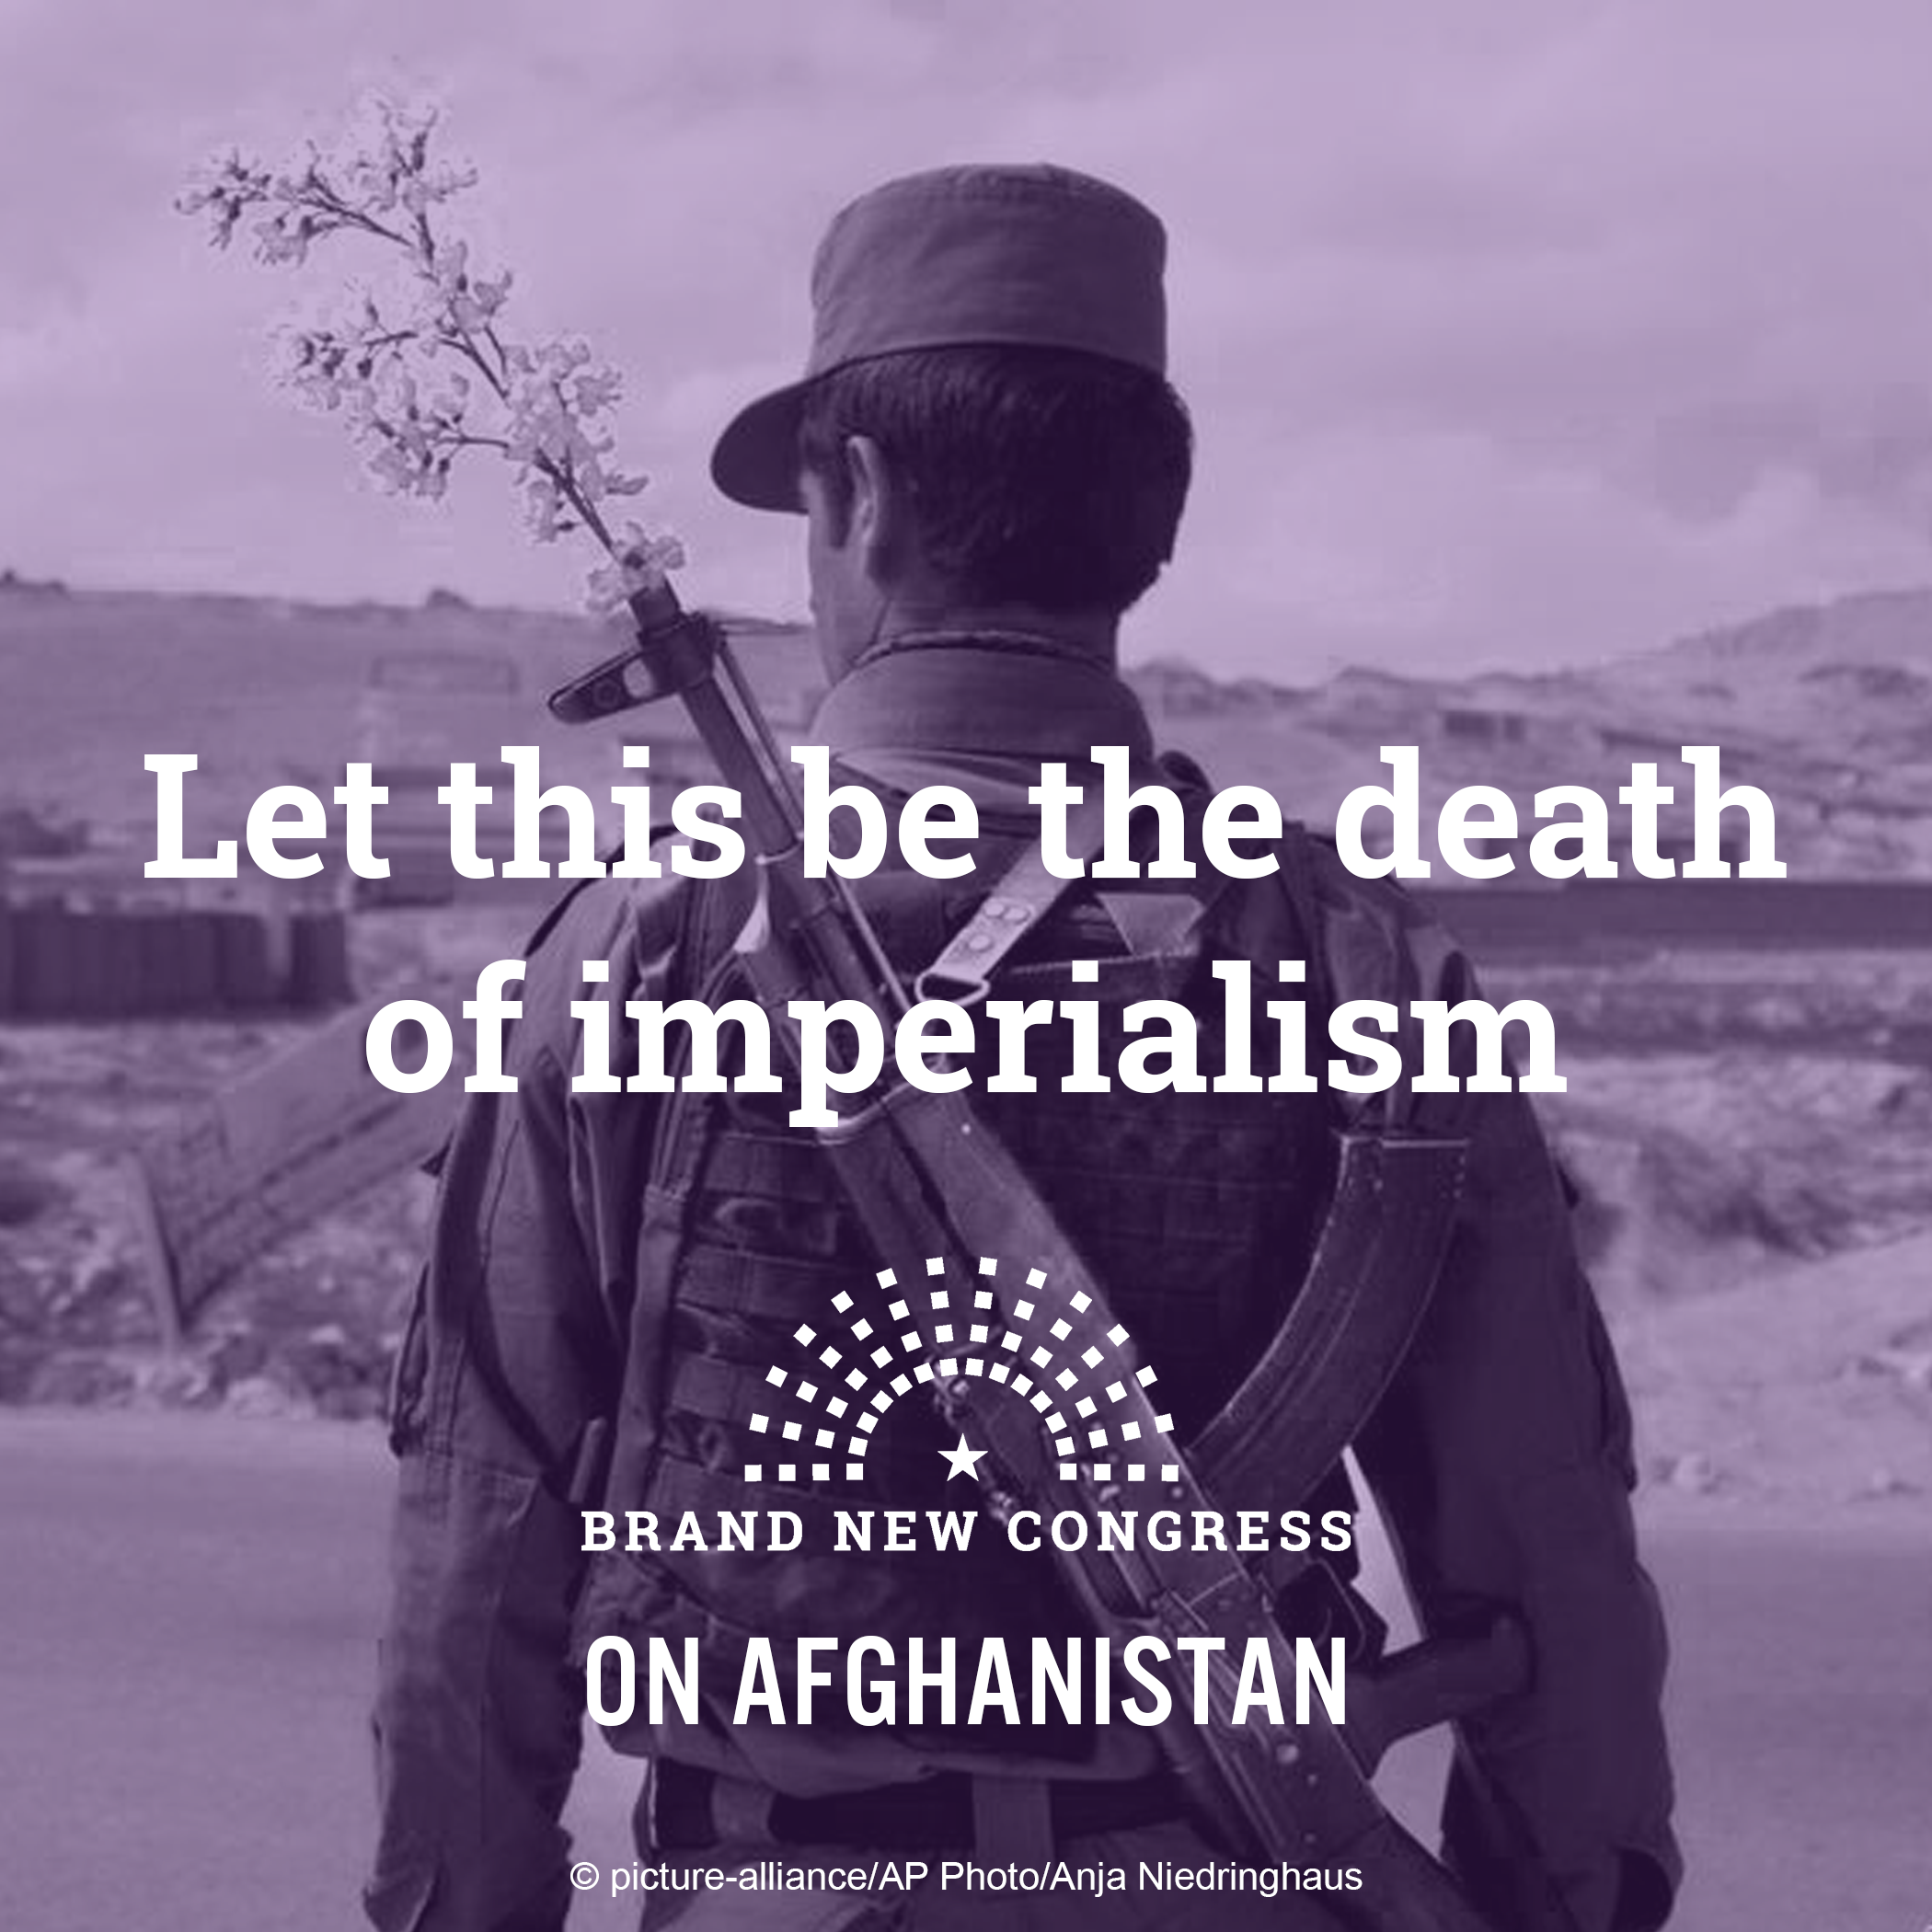 Let this be the death of Imperialism.